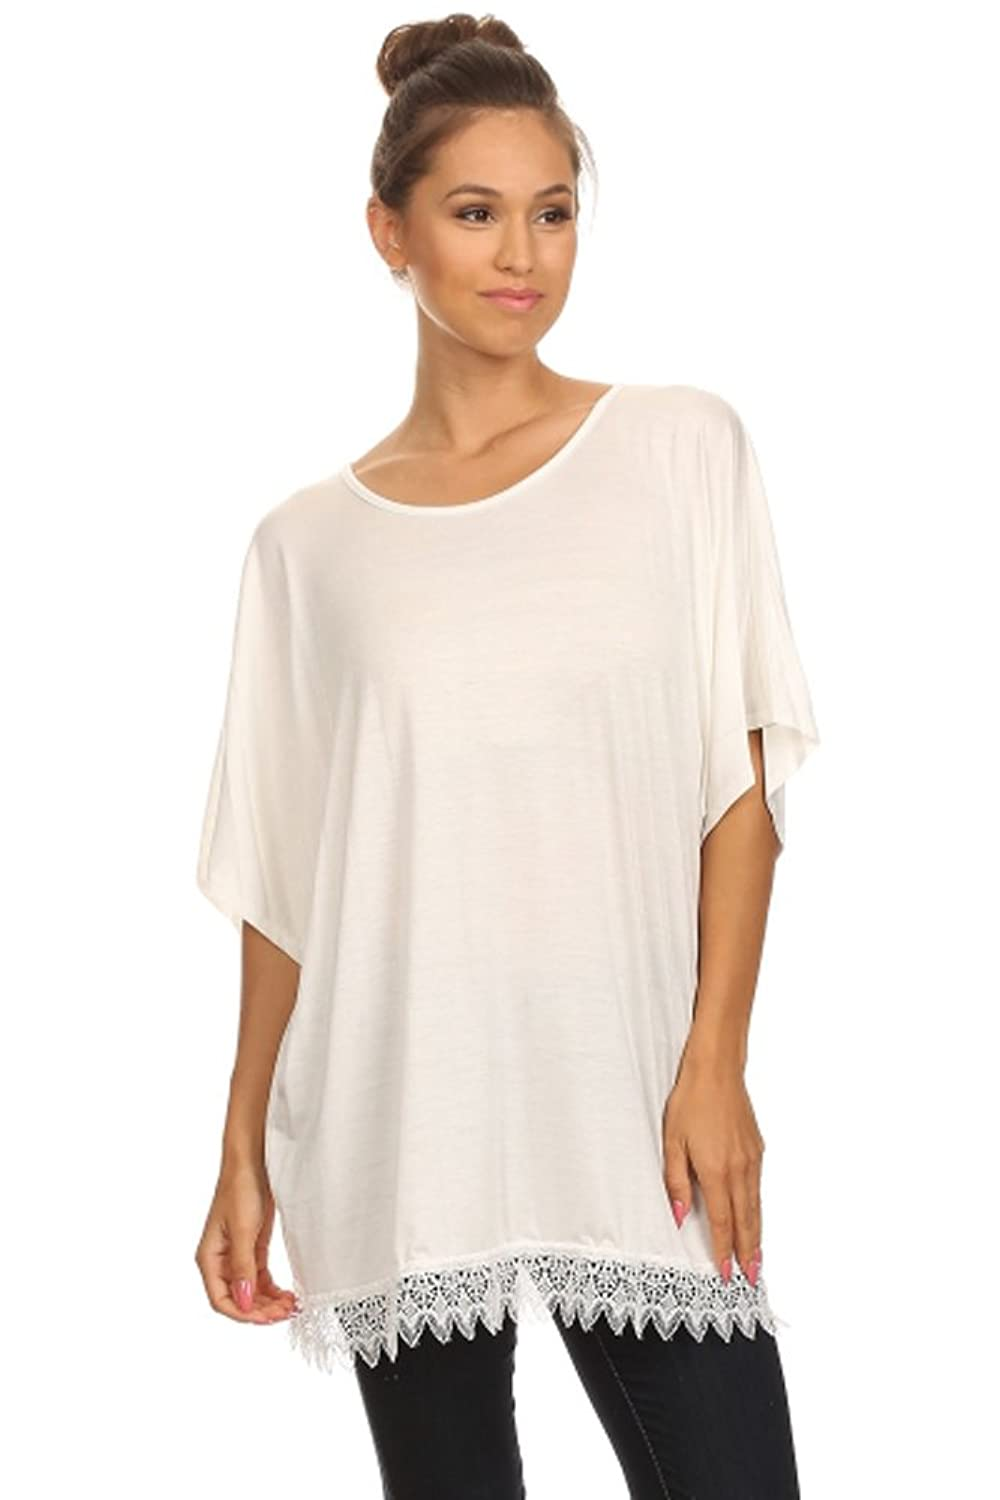 Trendyfriday Women's Plus Size Solid Top with Crochet Trim (B45-MA9-X)